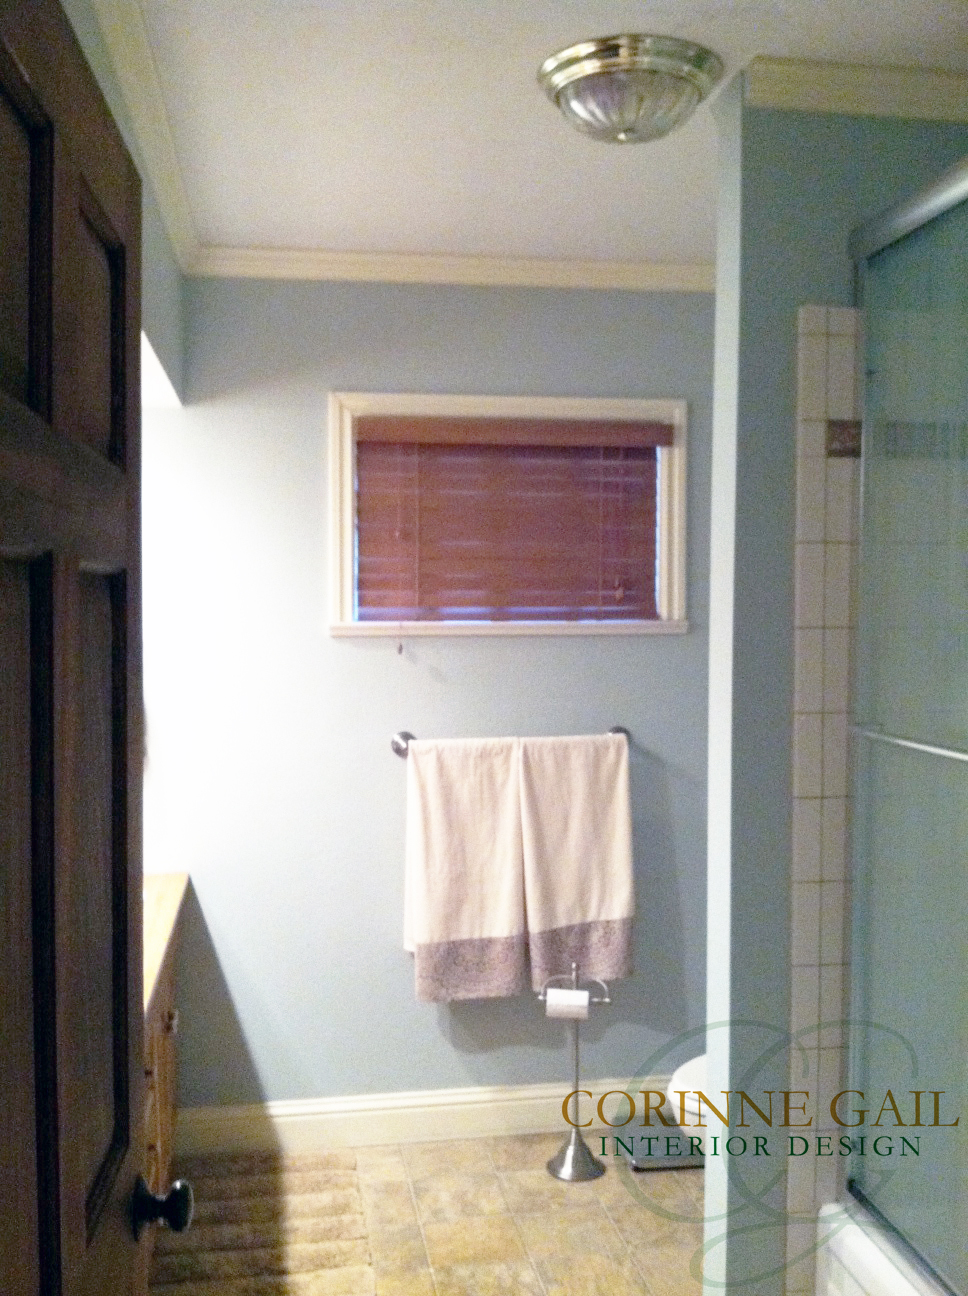 Kitchens And Baths Quick Bathroom Makeovers You Can Do Corinne - Easy bathroom makeovers